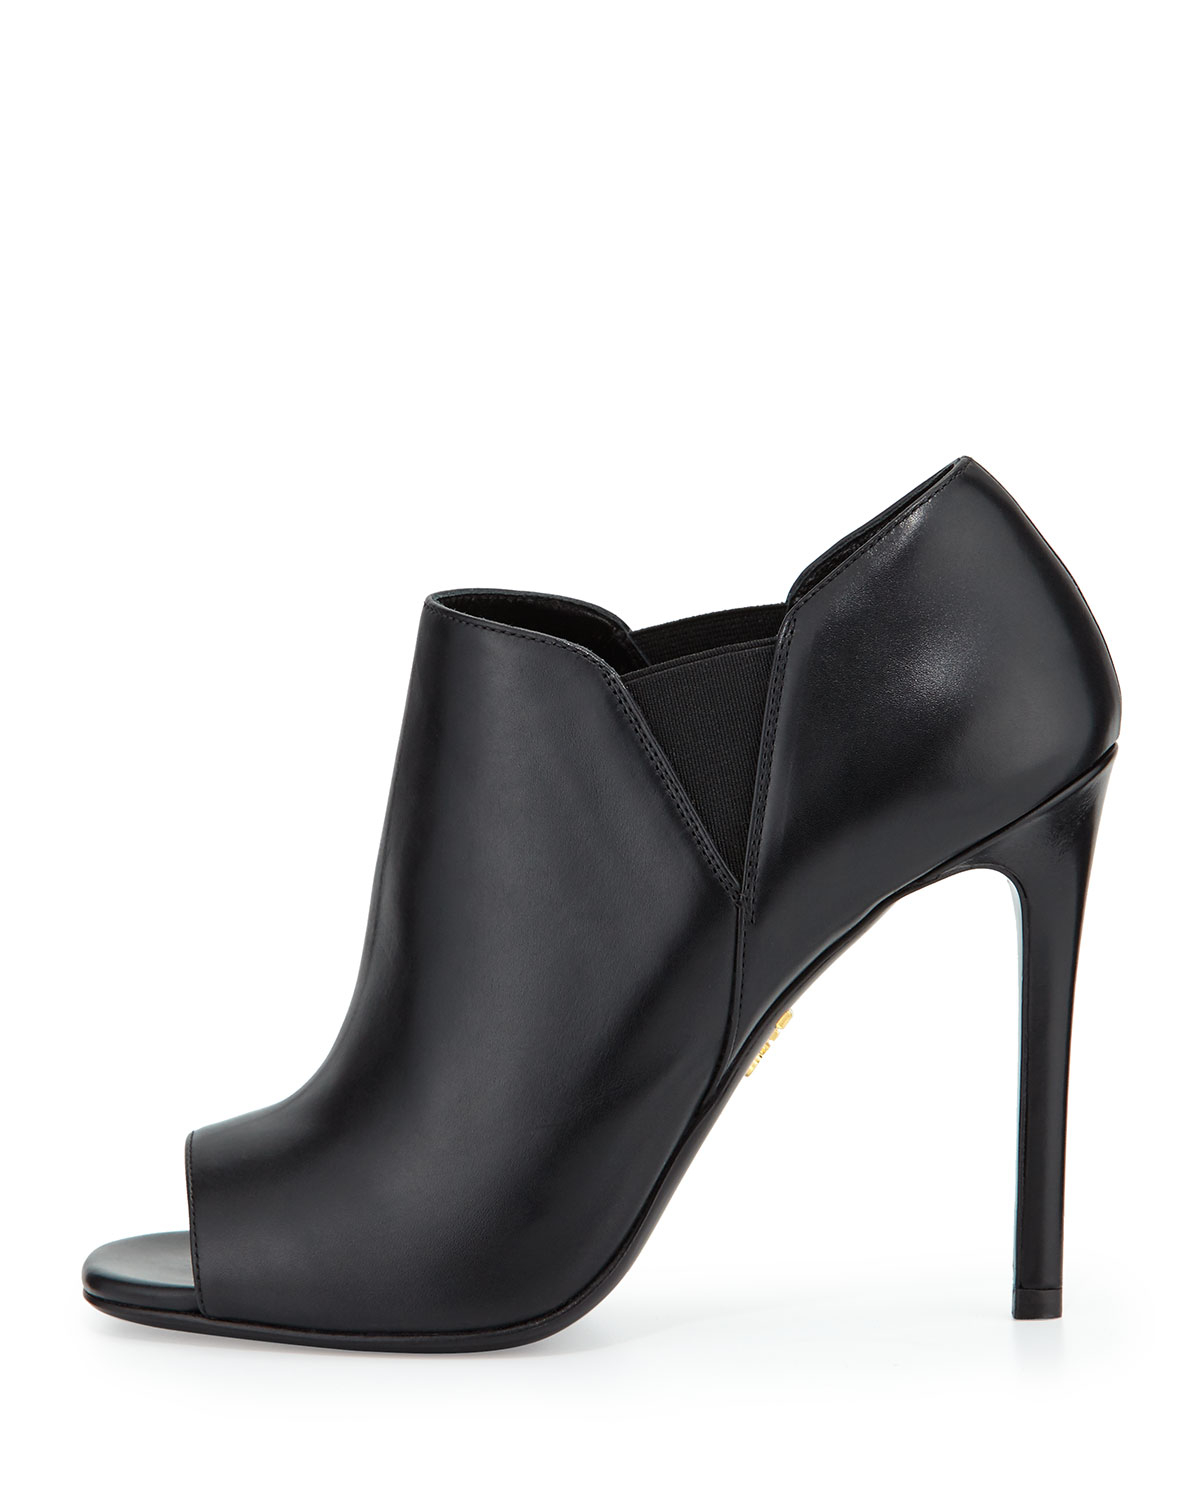 prada open toe leather high heel bootie in black nero lyst. Black Bedroom Furniture Sets. Home Design Ideas